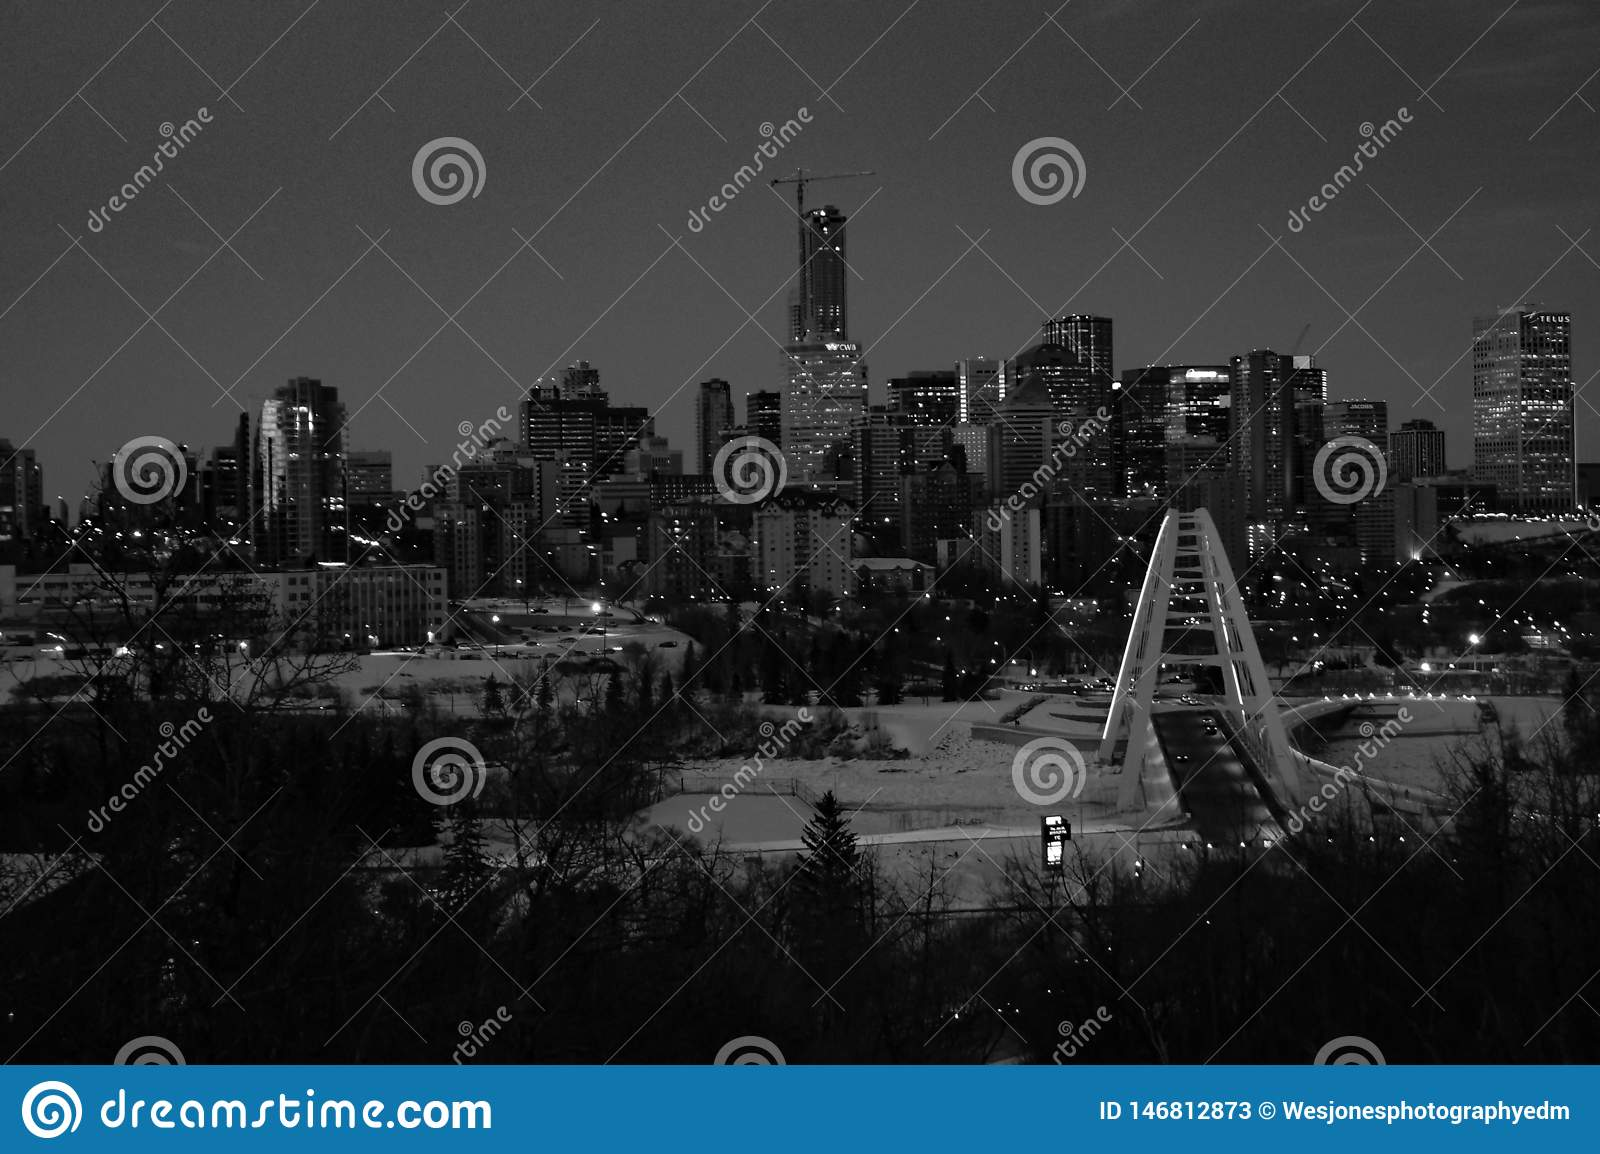 Black and white cityscape of Edmonton, Alberta, Canada